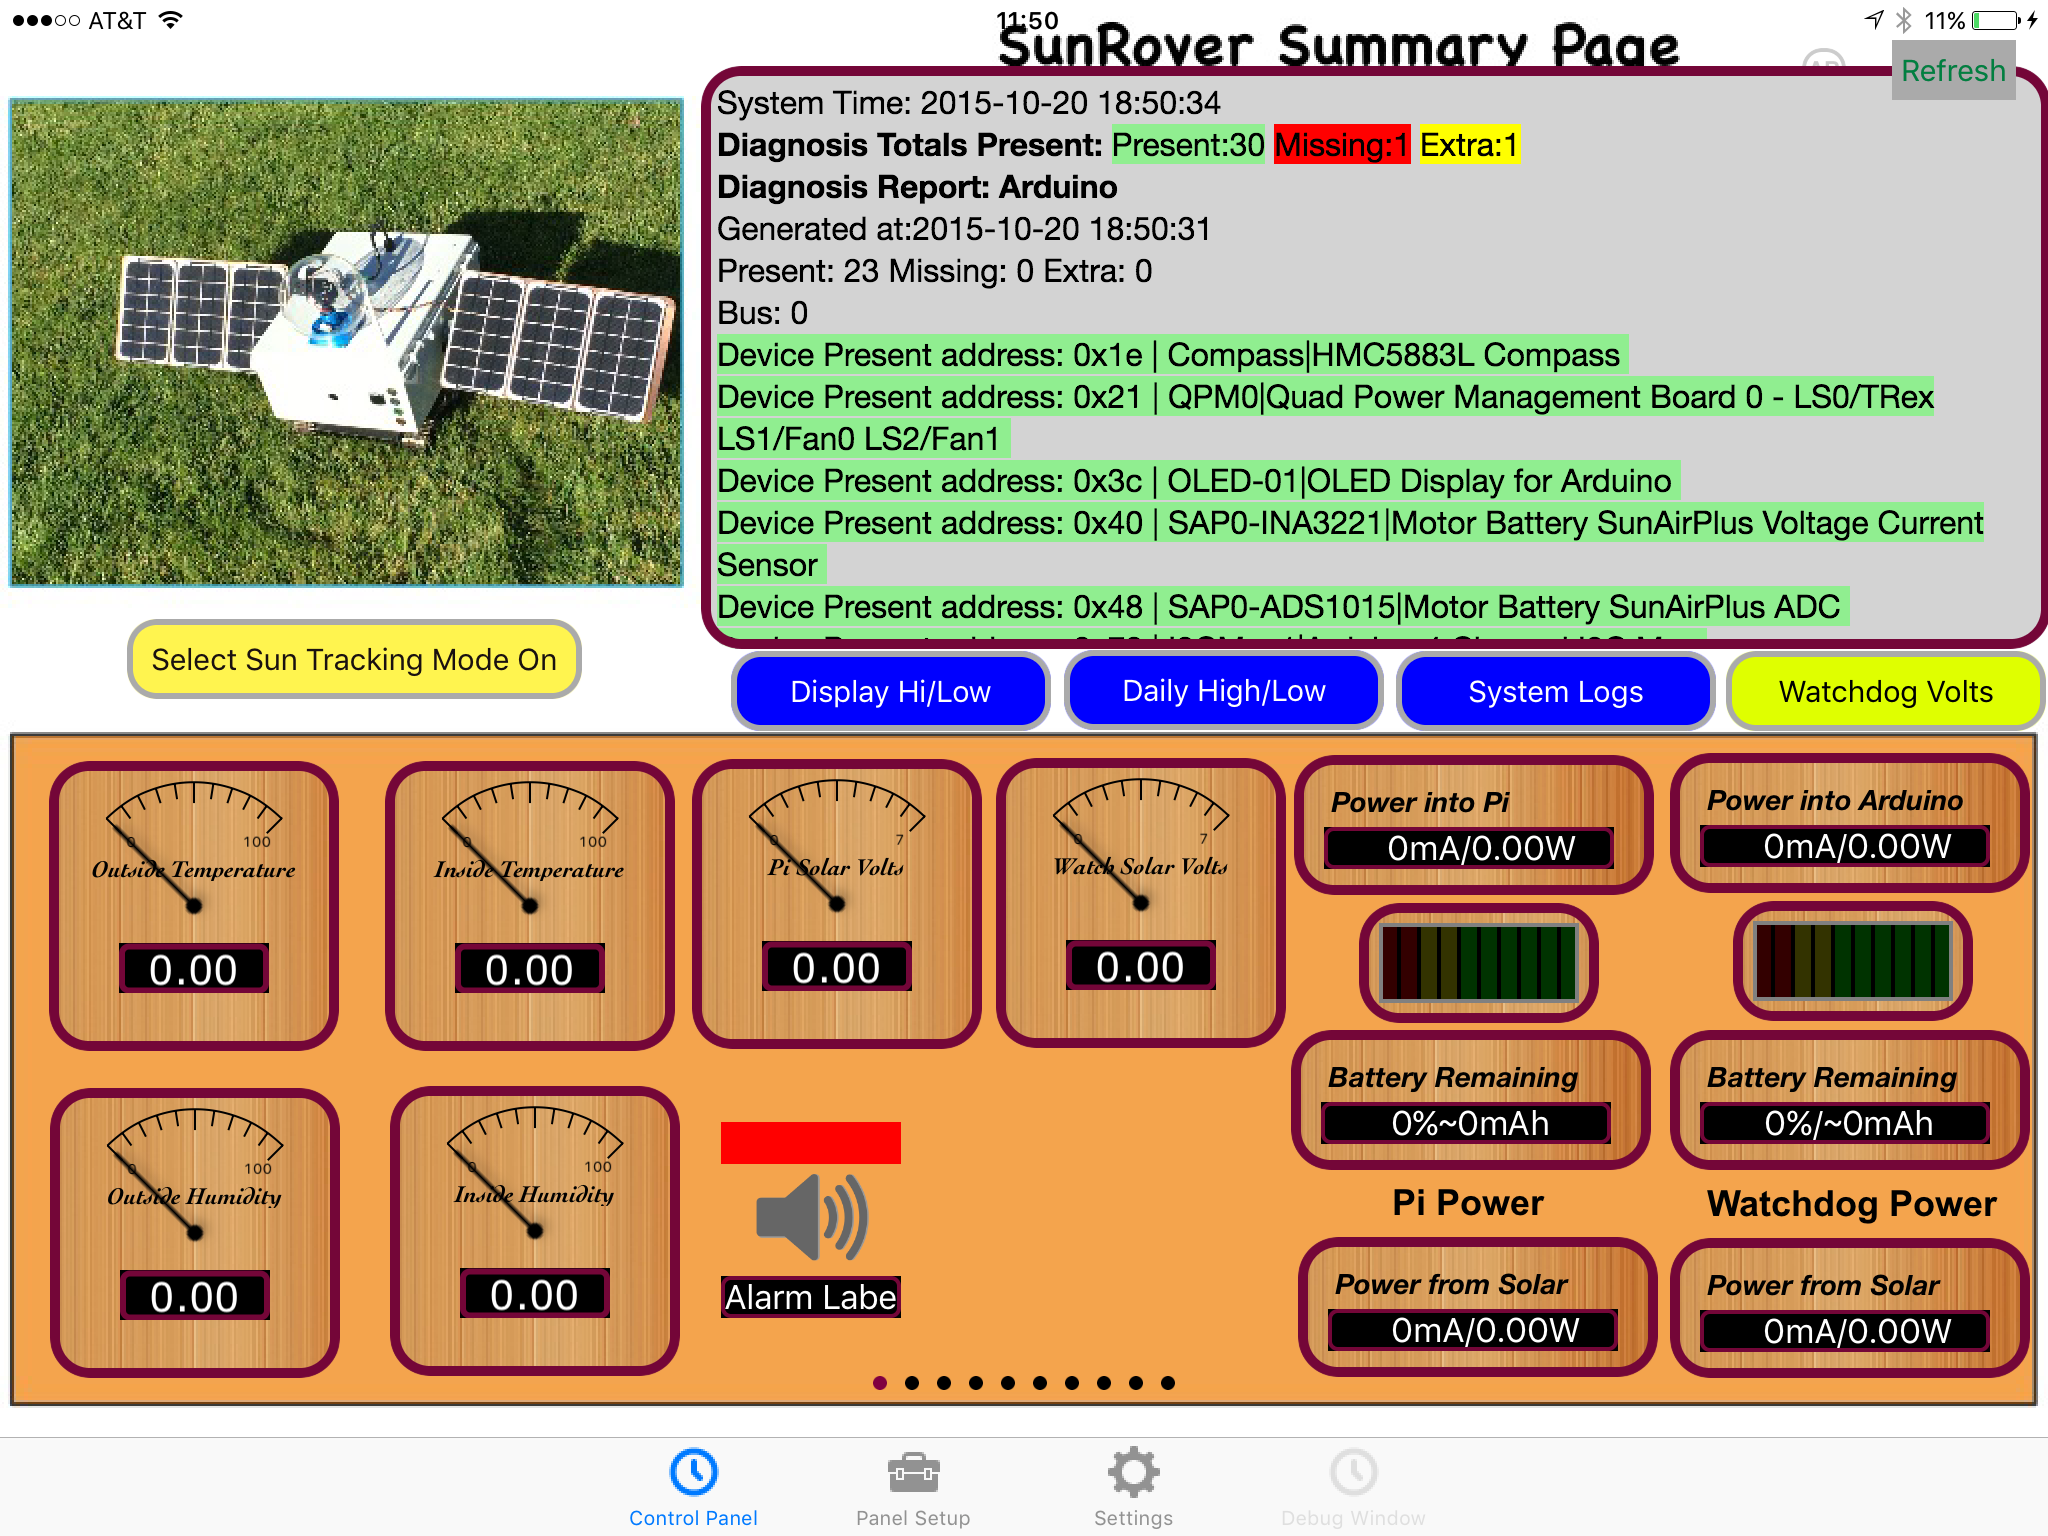 Is the SunRover Robot Sick?  Diagnosis and Control Panels Coming Up.